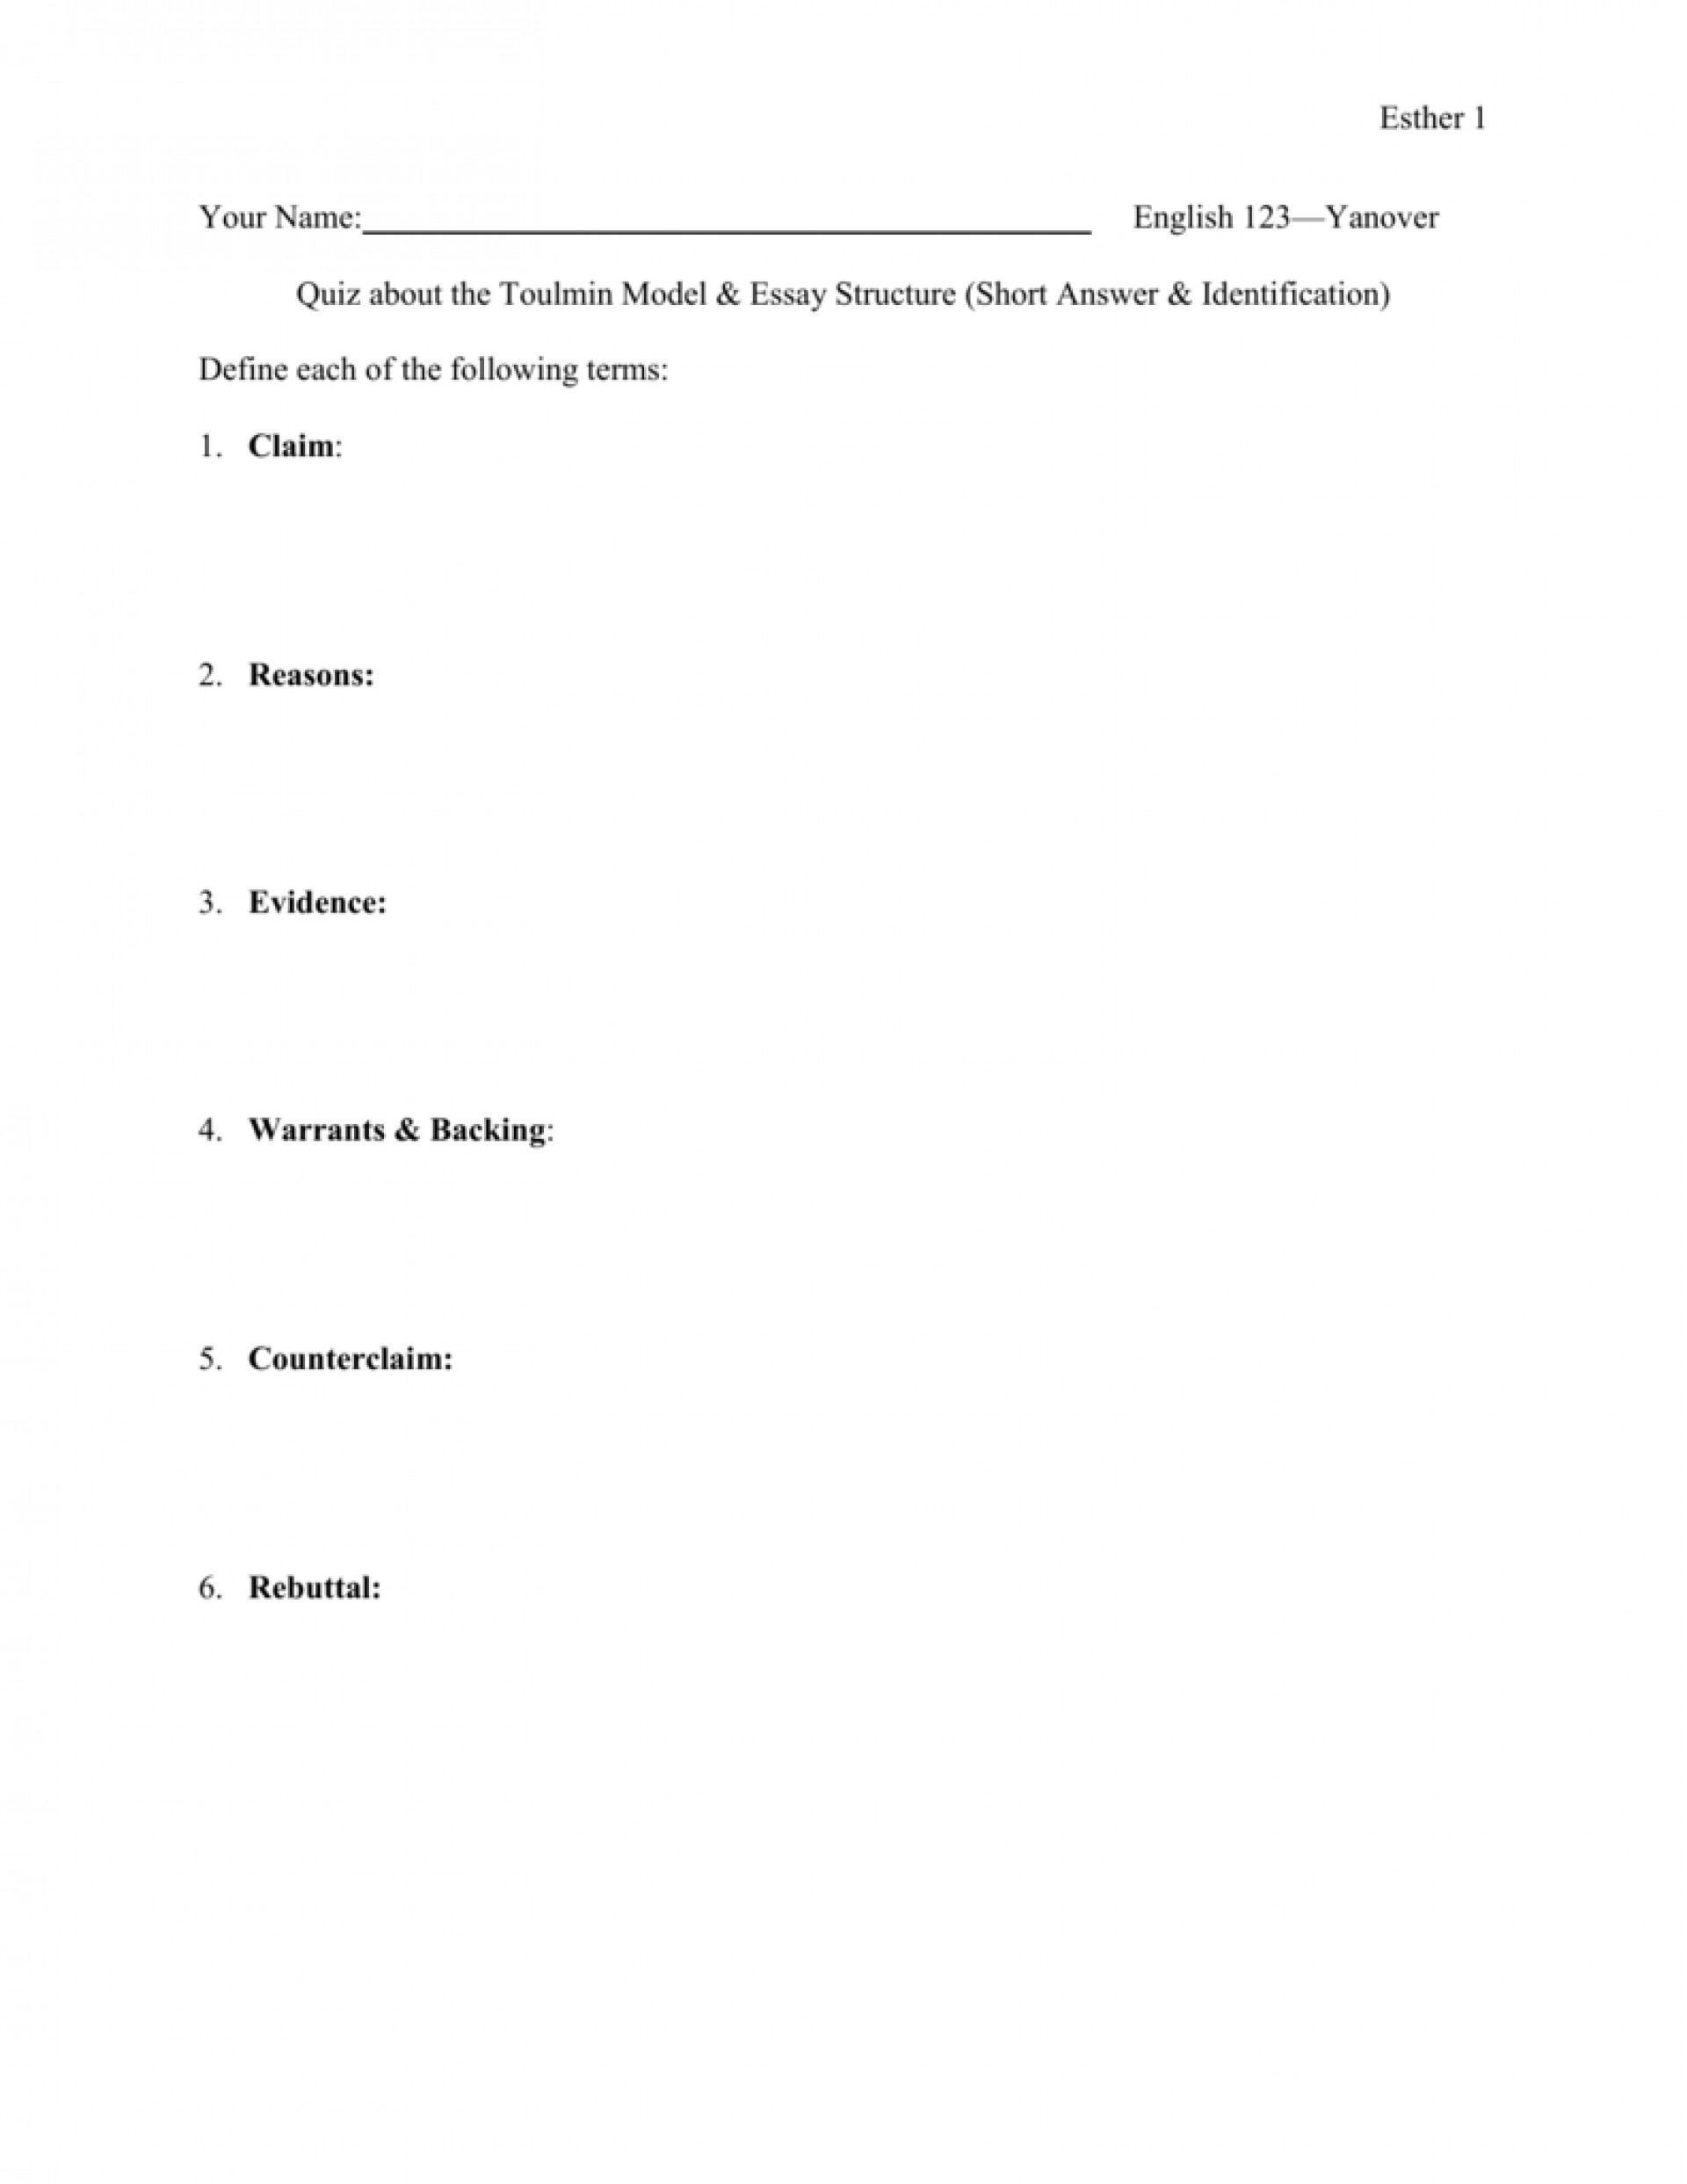 018 009570885 1 Toulmin Essay Striking Method Outline 1920